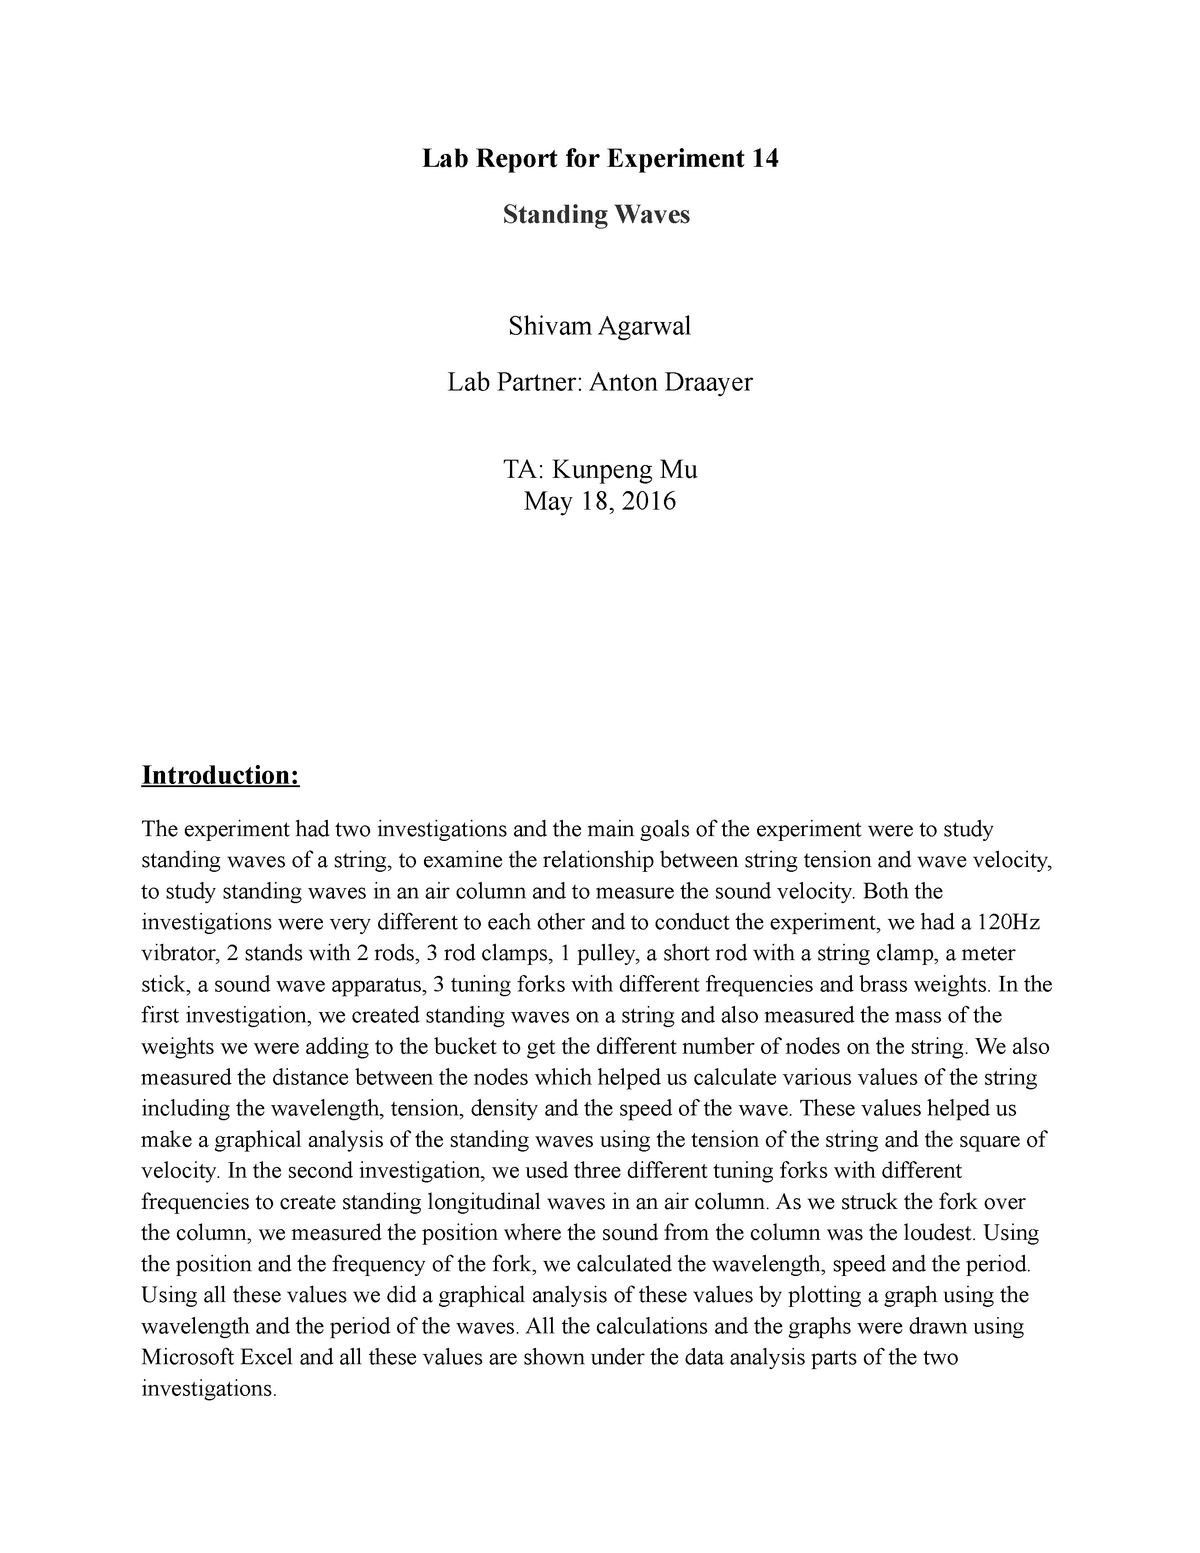 Lab 2 - This is a Lab report for a physics experiment on Standing